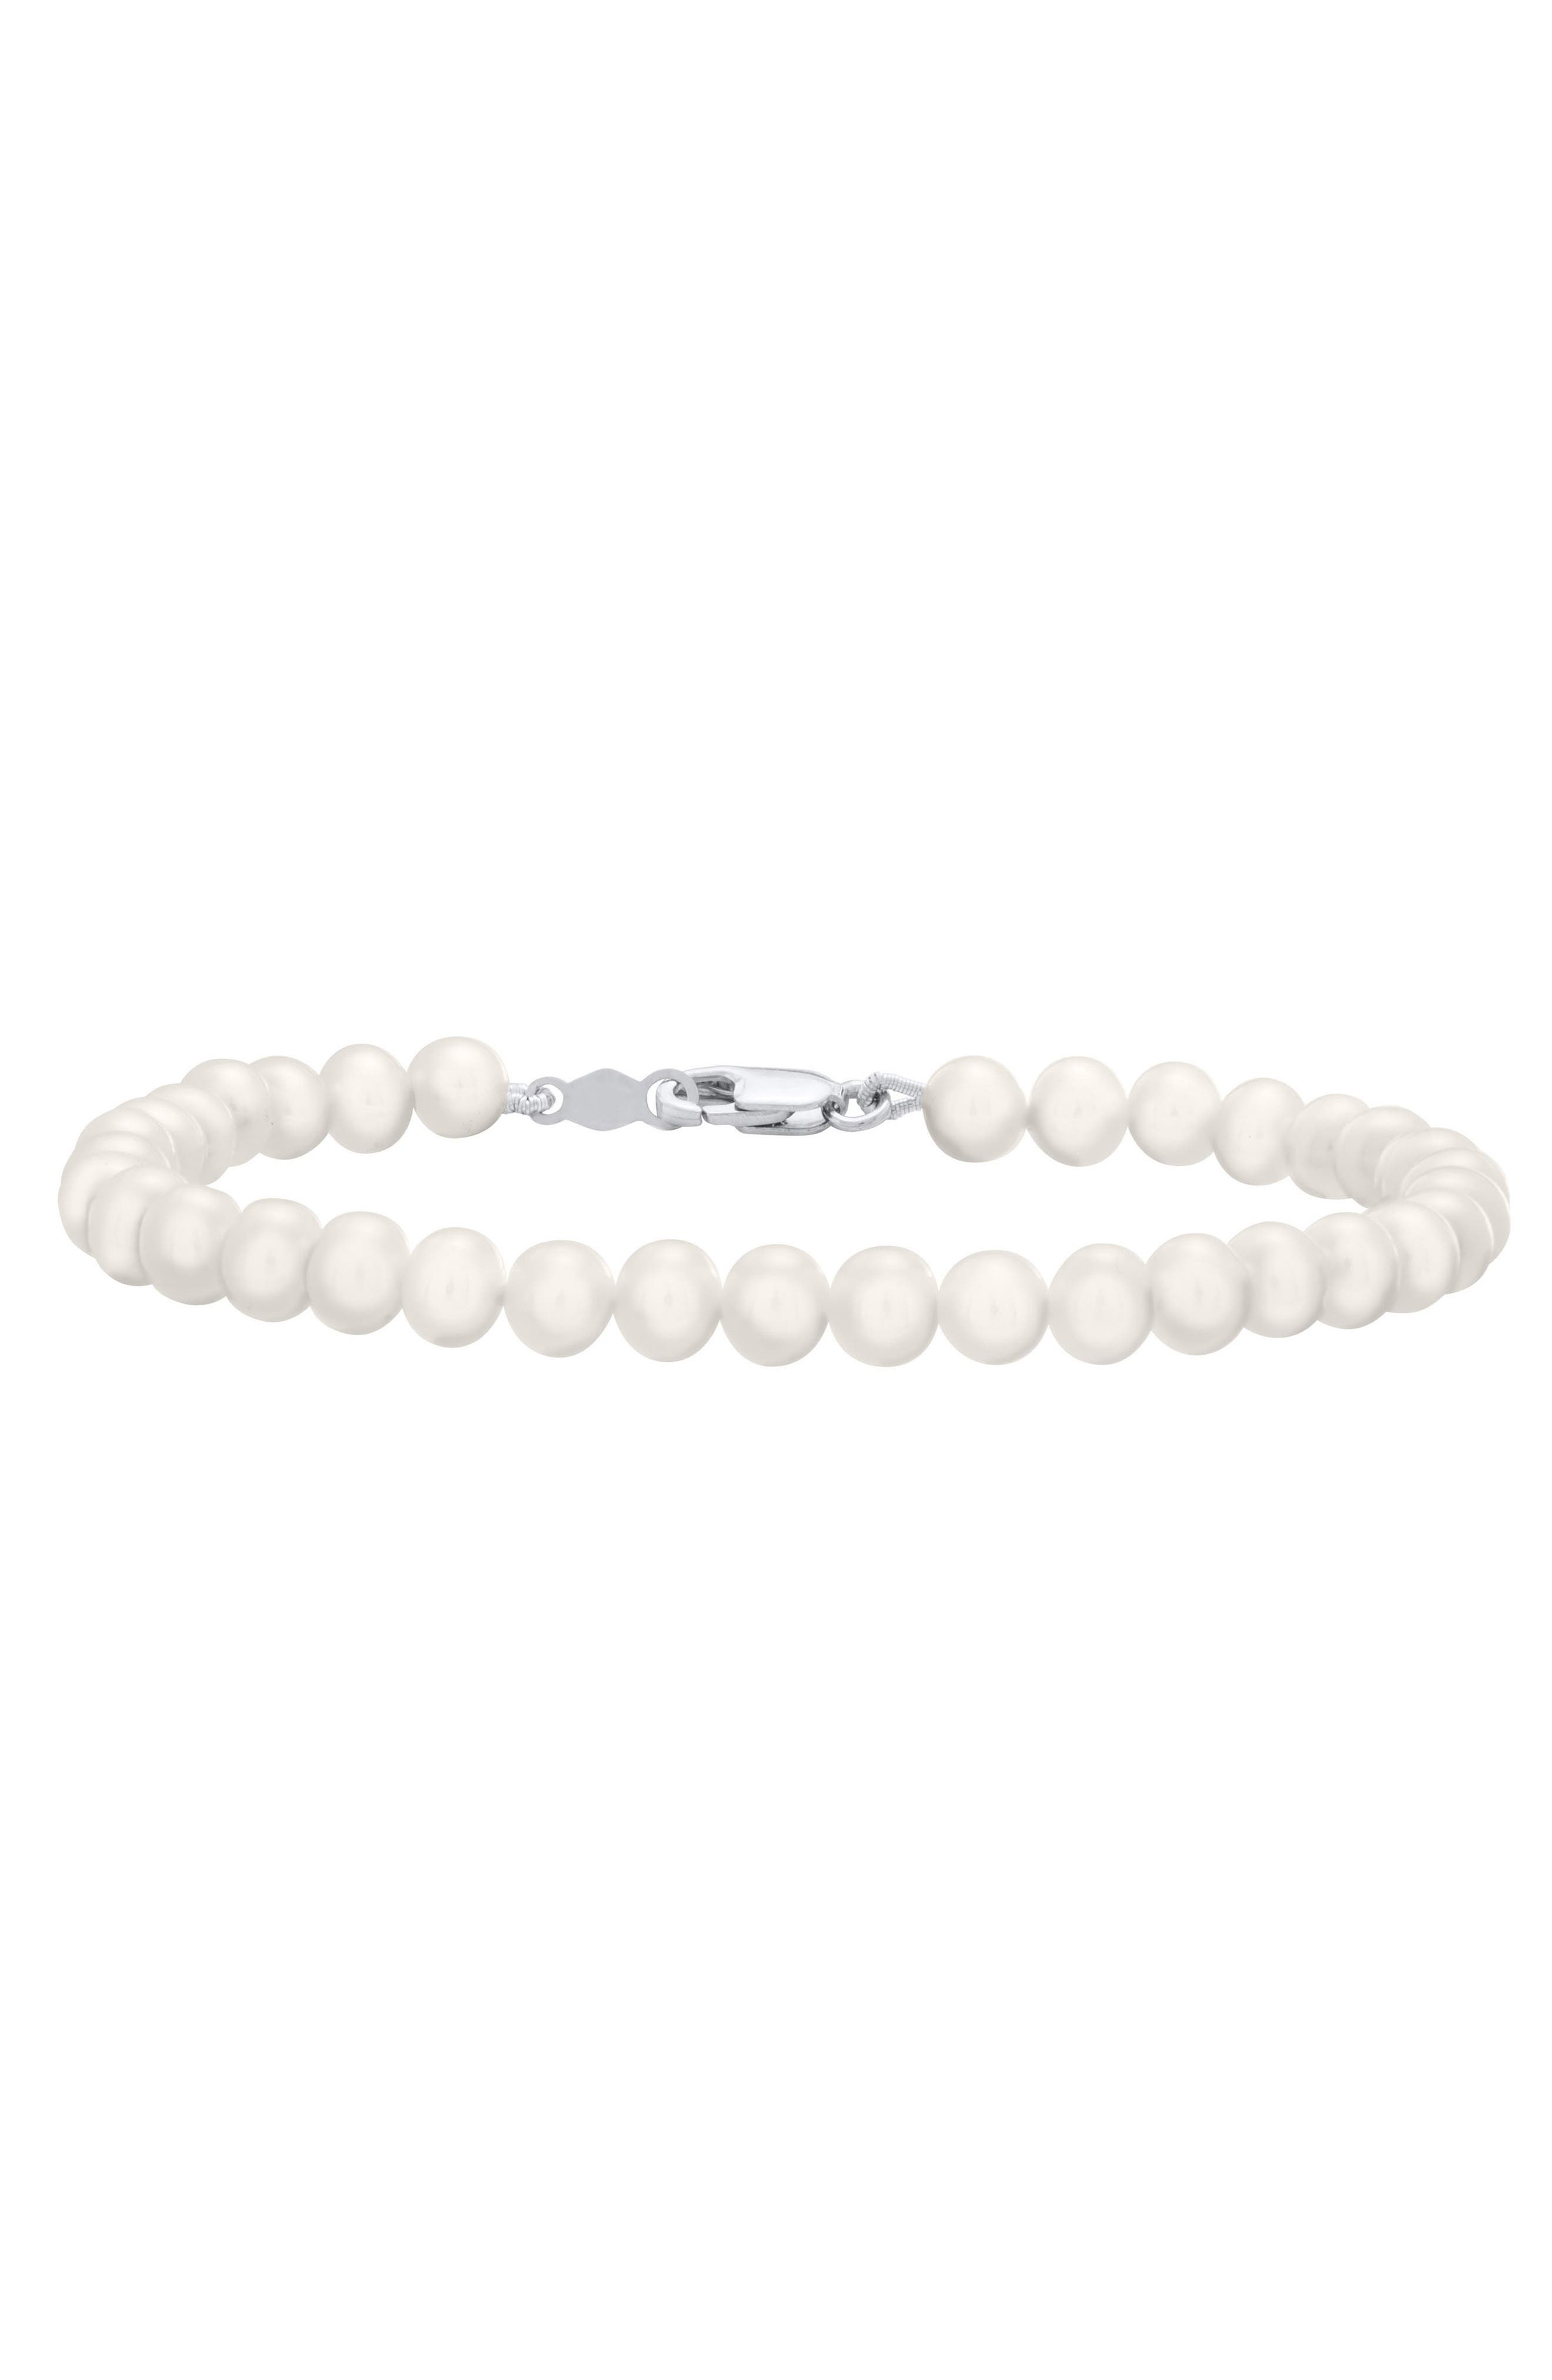 Sterling Silver & Cultured Pearl Bracelet,                             Main thumbnail 1, color,                             SILVER